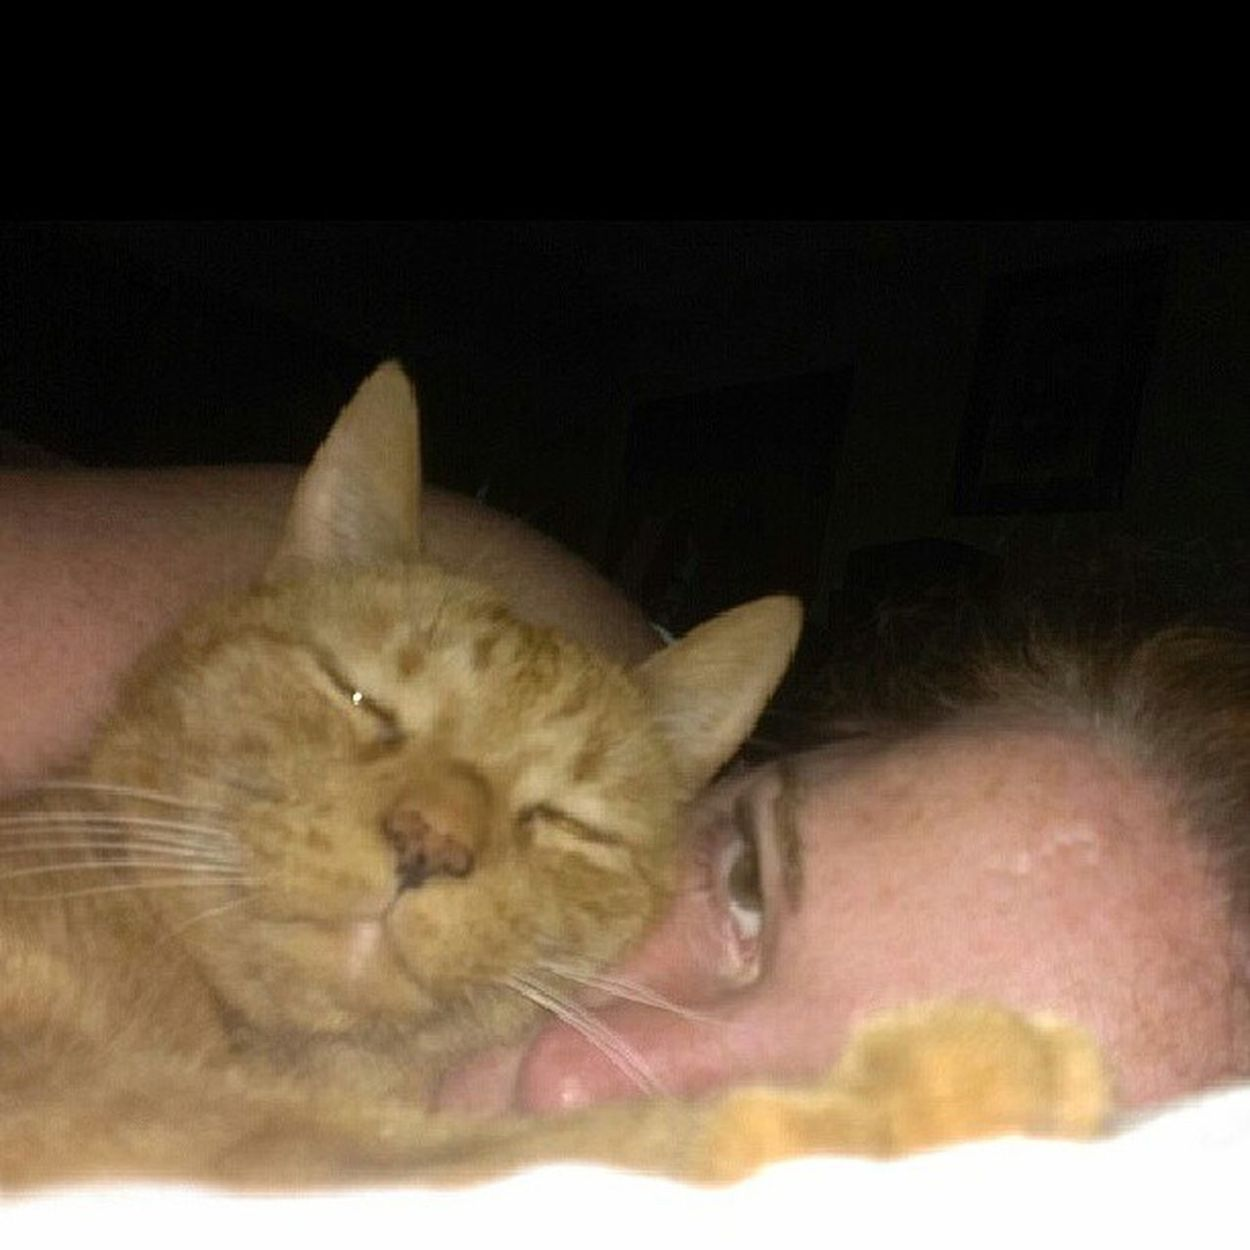 Please ignore my sleepy human face. Look at the adorable cat face. Max Bubby Bigorangetabby Cuddlyboy catsofinstagram catsagram